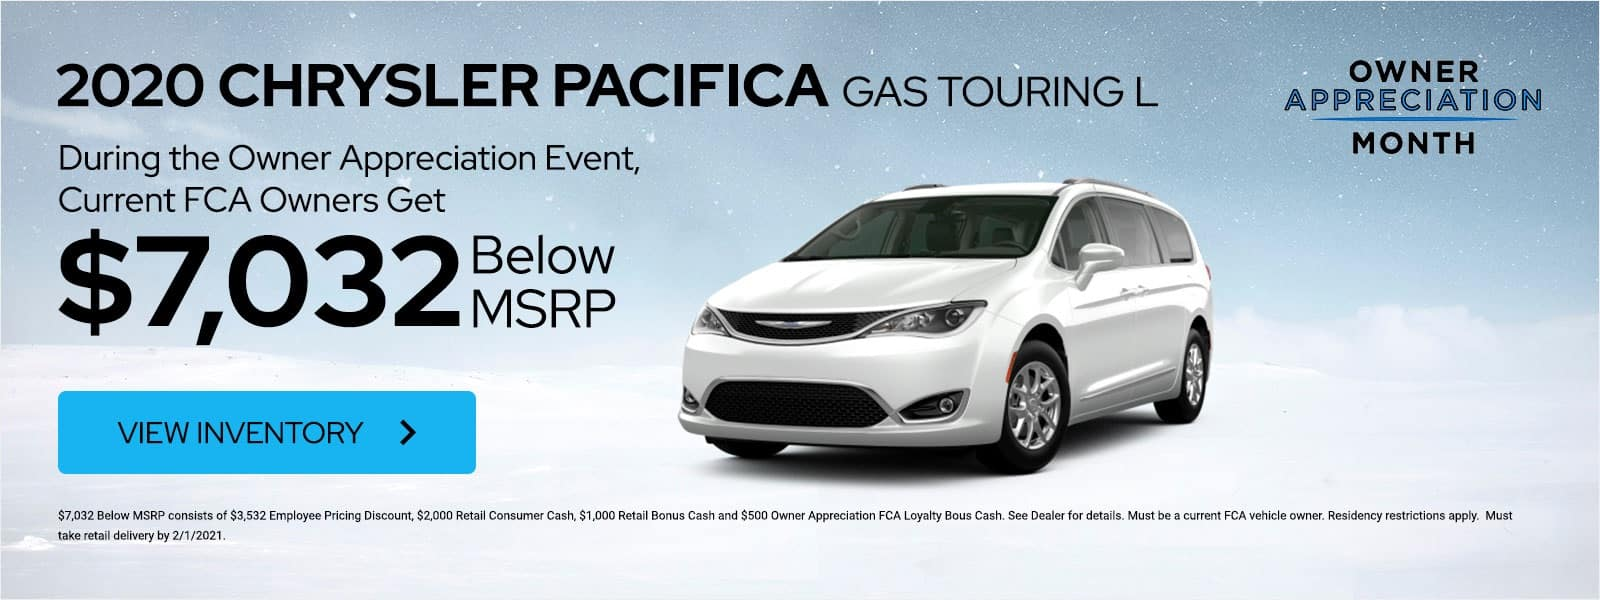 Pacifica-Gas-Touring-L- RETAIL (All Markets) (1) (1)